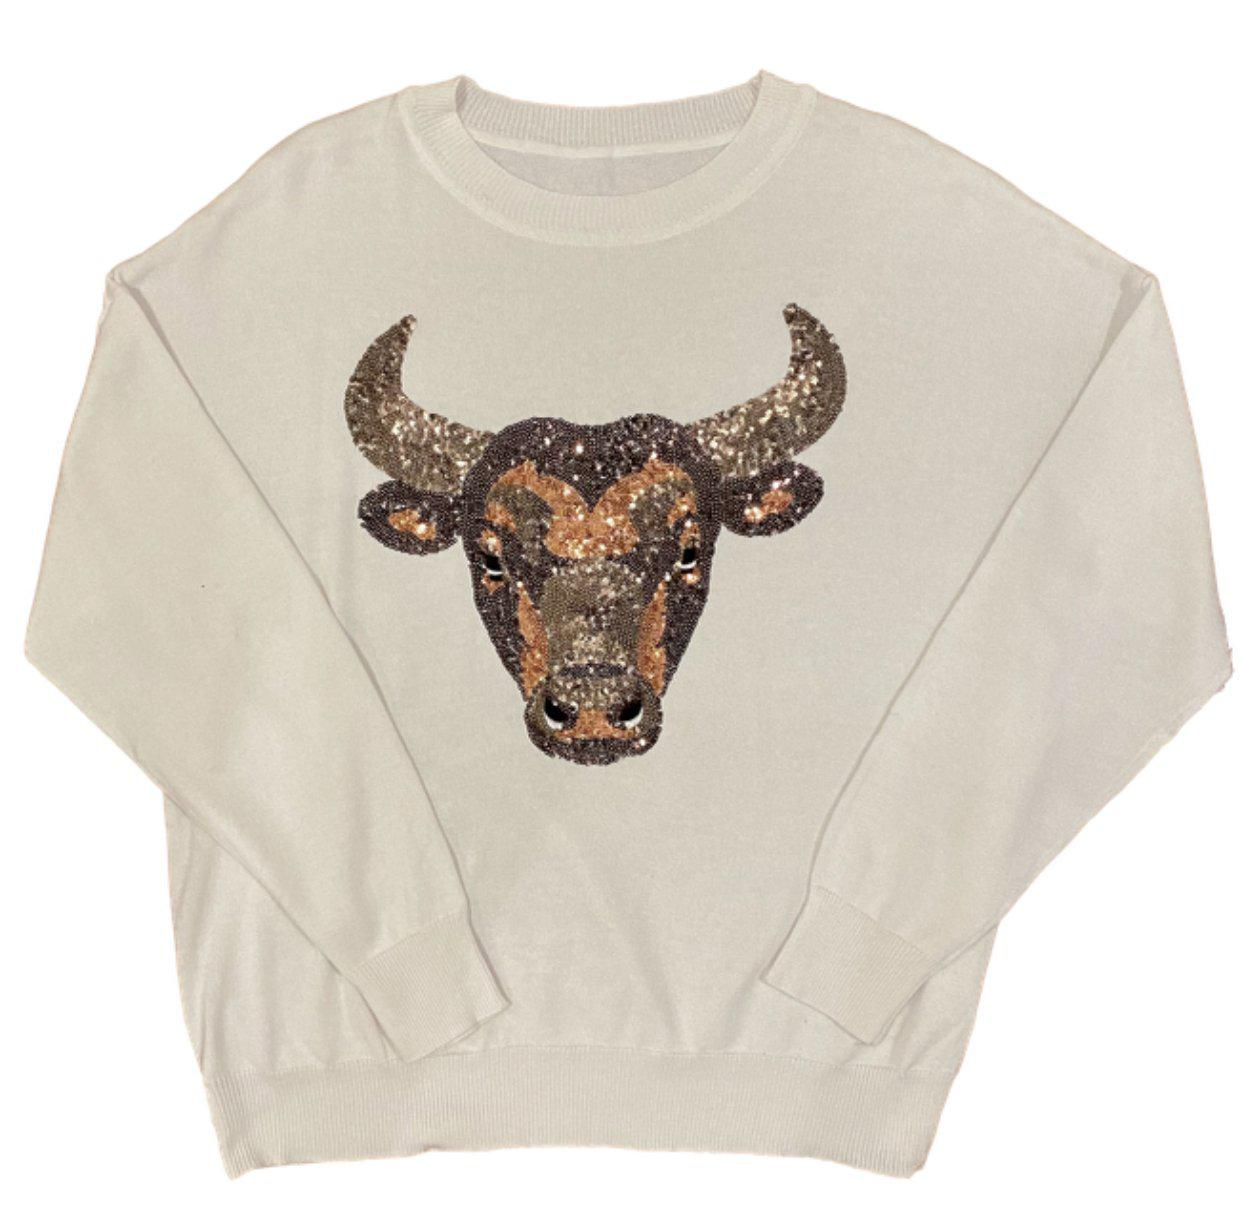 Oversized Bull Sweater